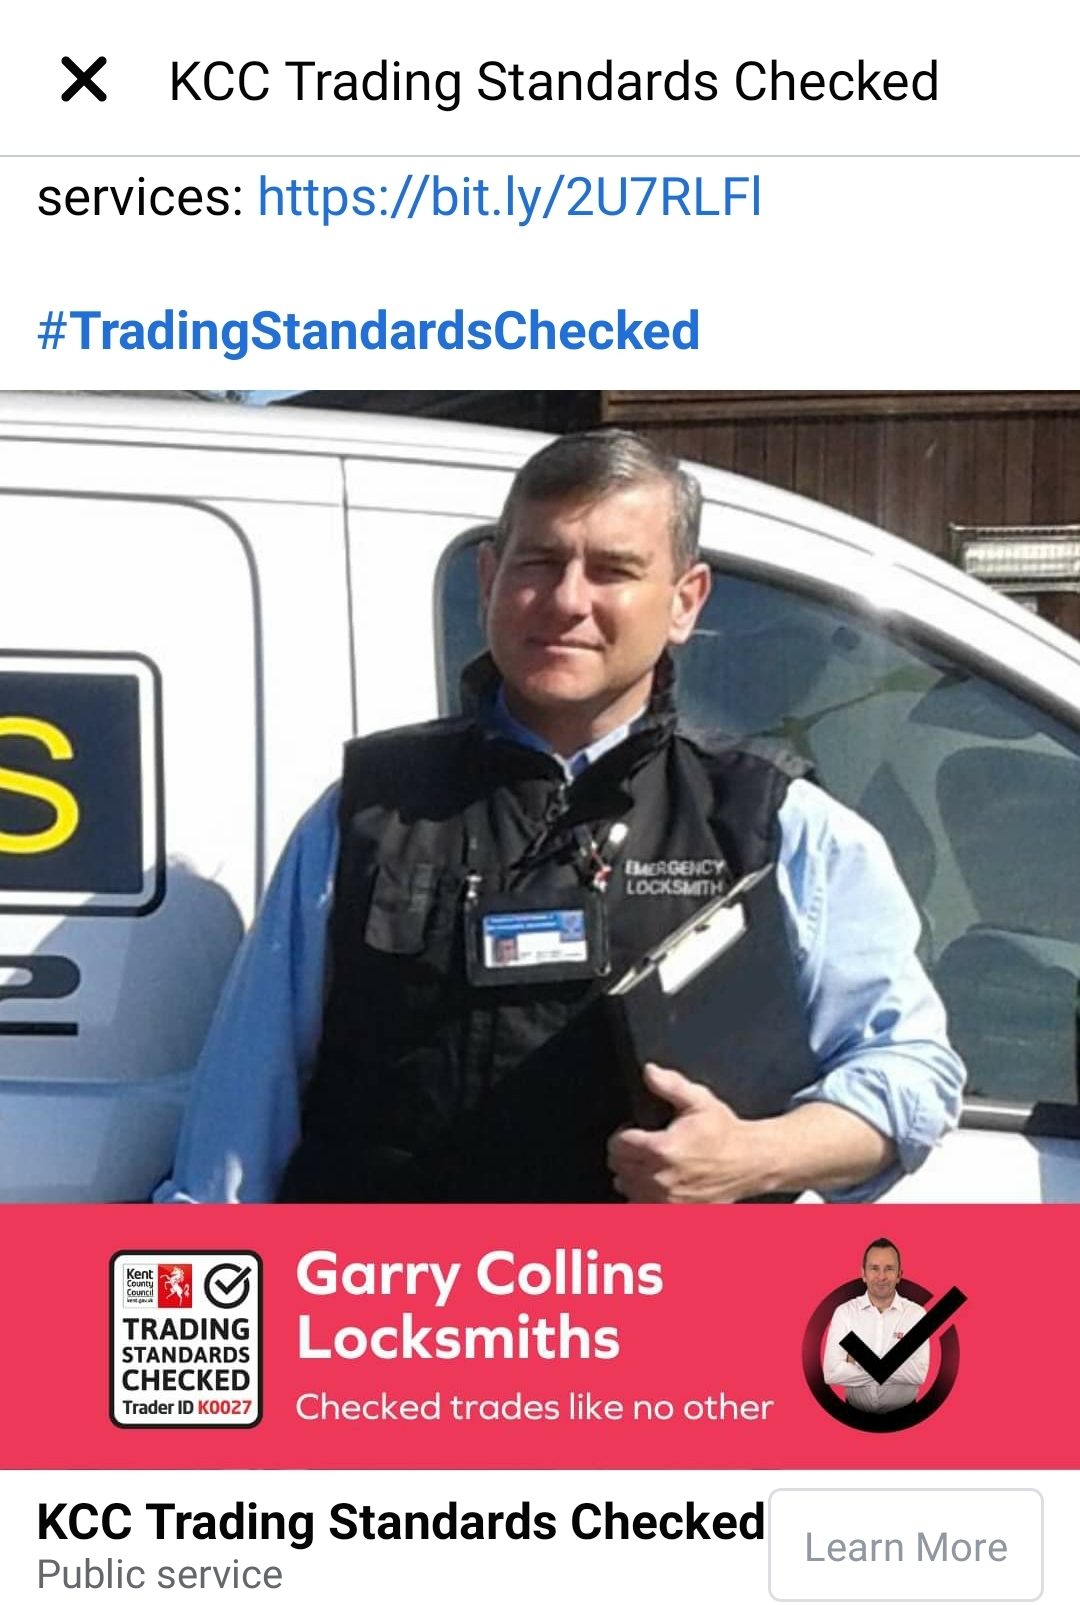 Garry Collins Locksmiths